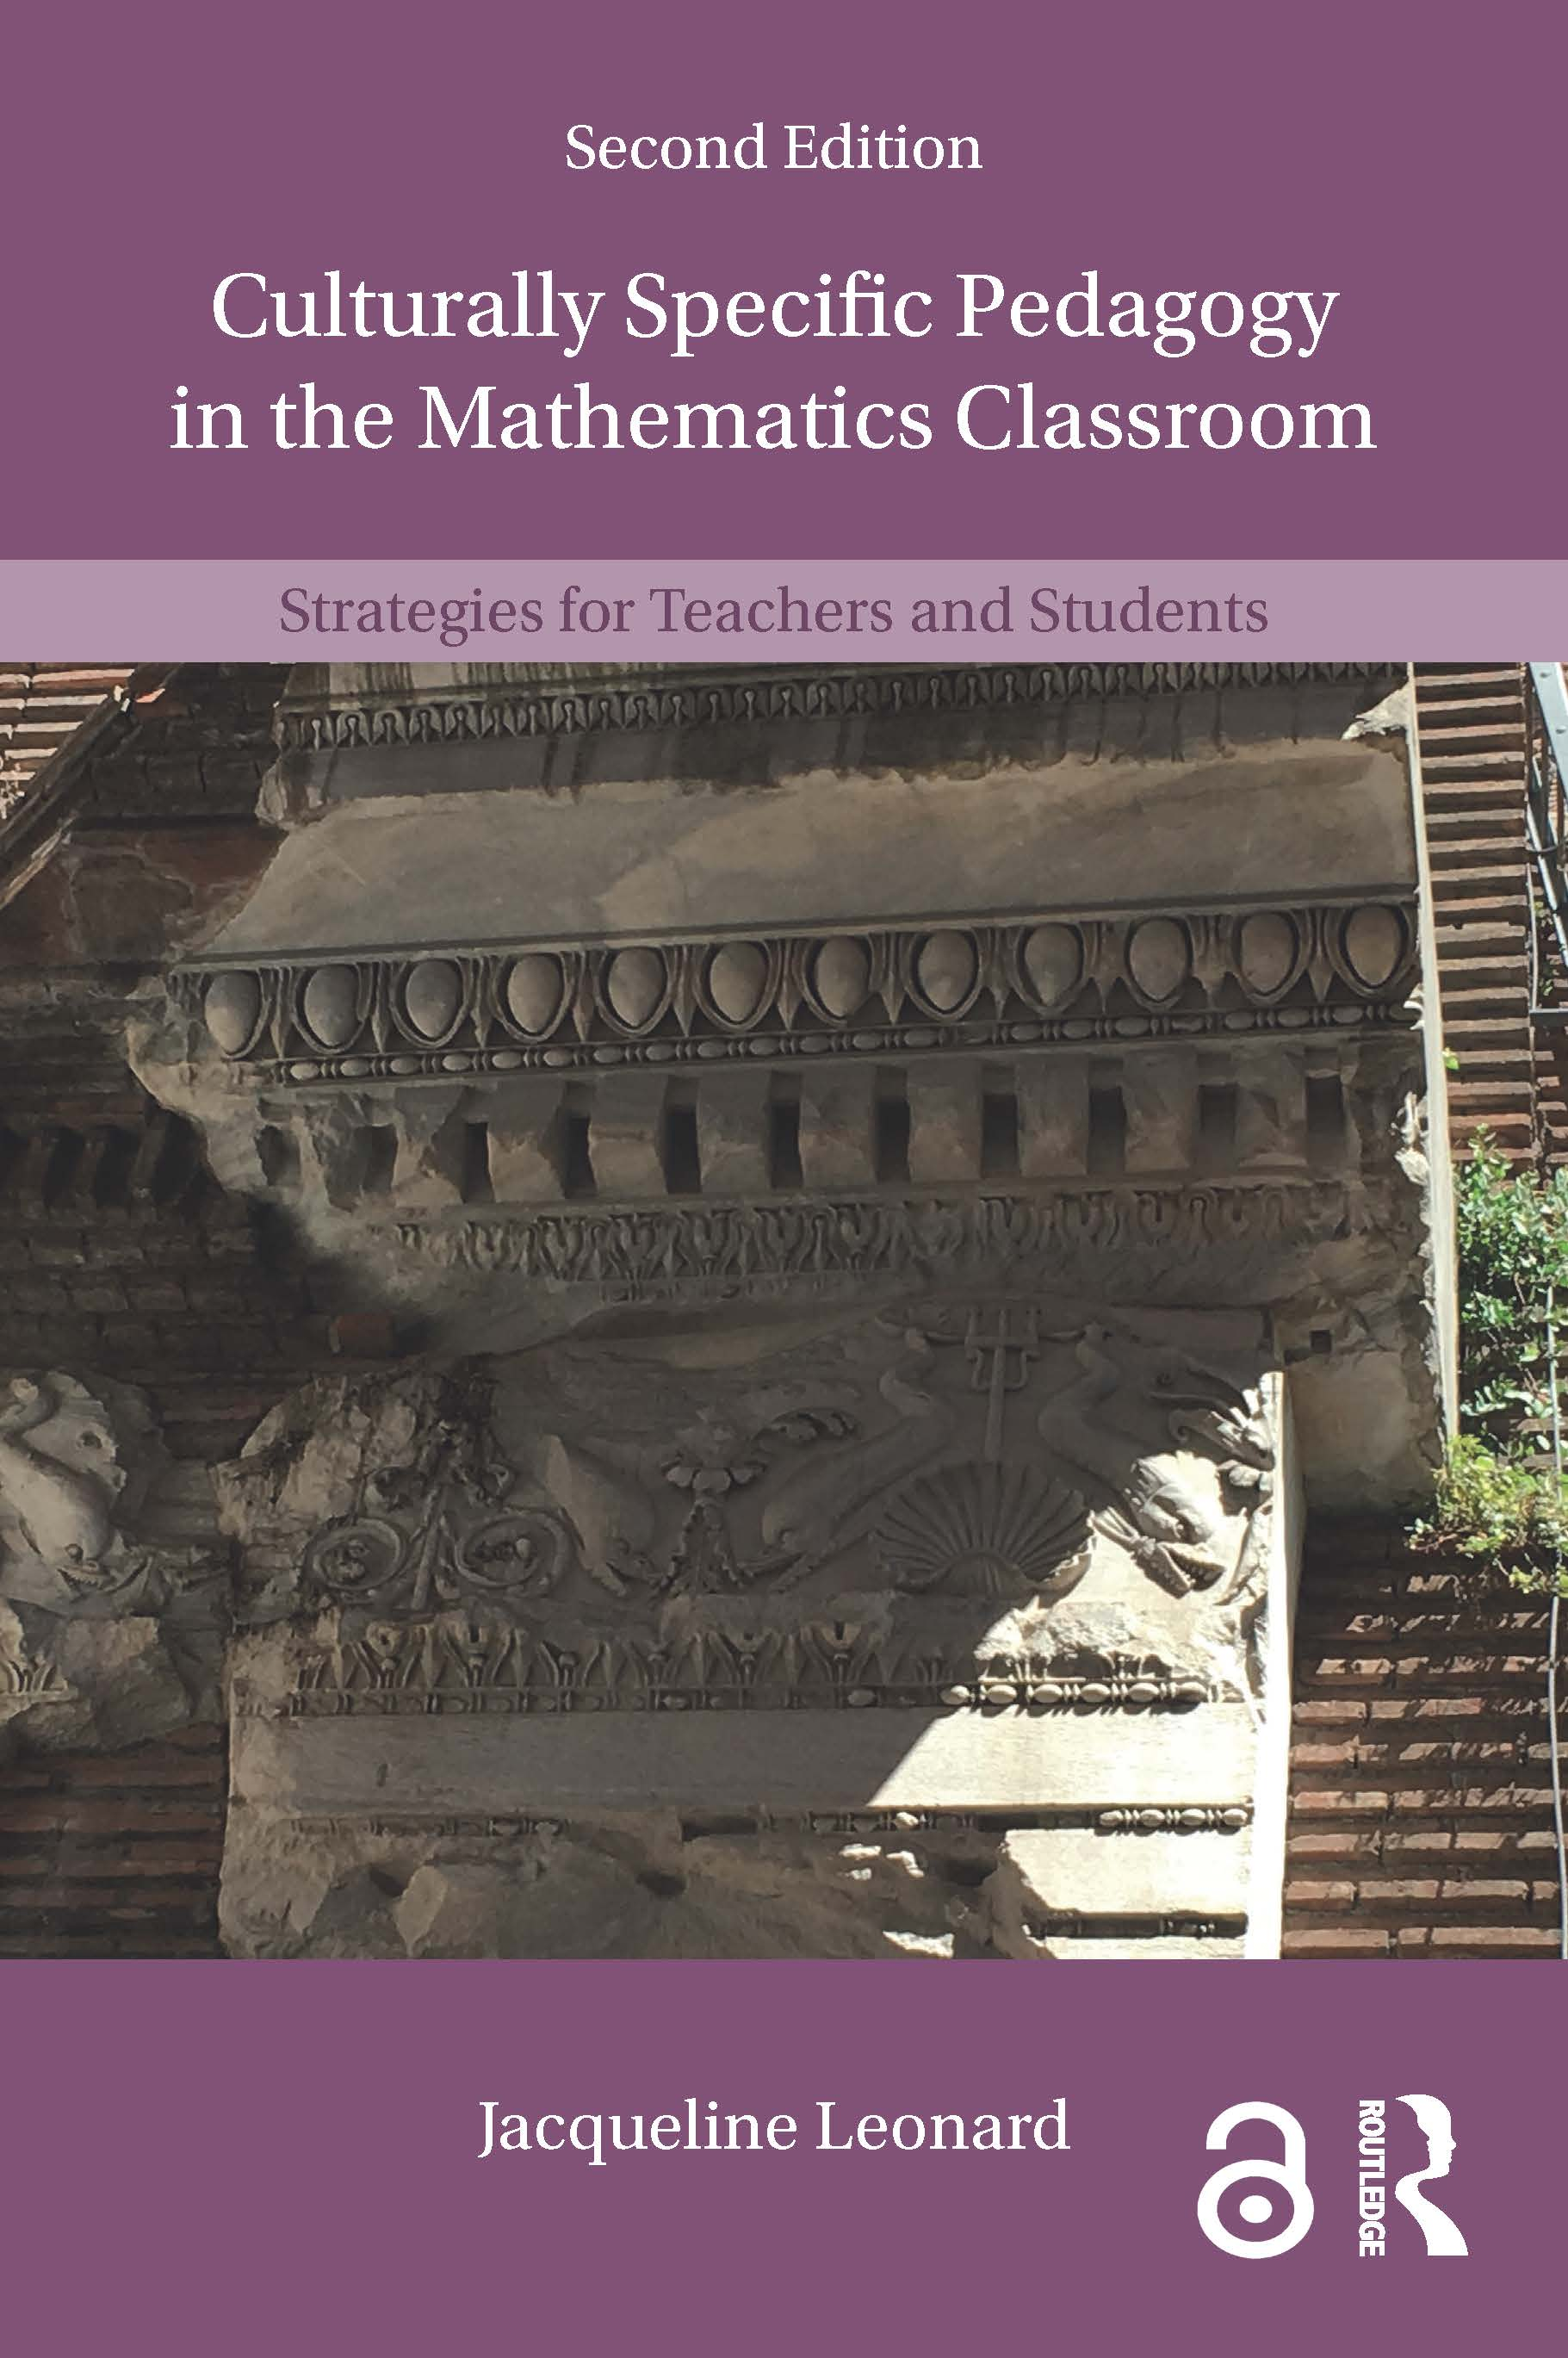 Culturally Specific Pedagogy in the Mathematics Classroom: Strategies for Teachers and Students book cover